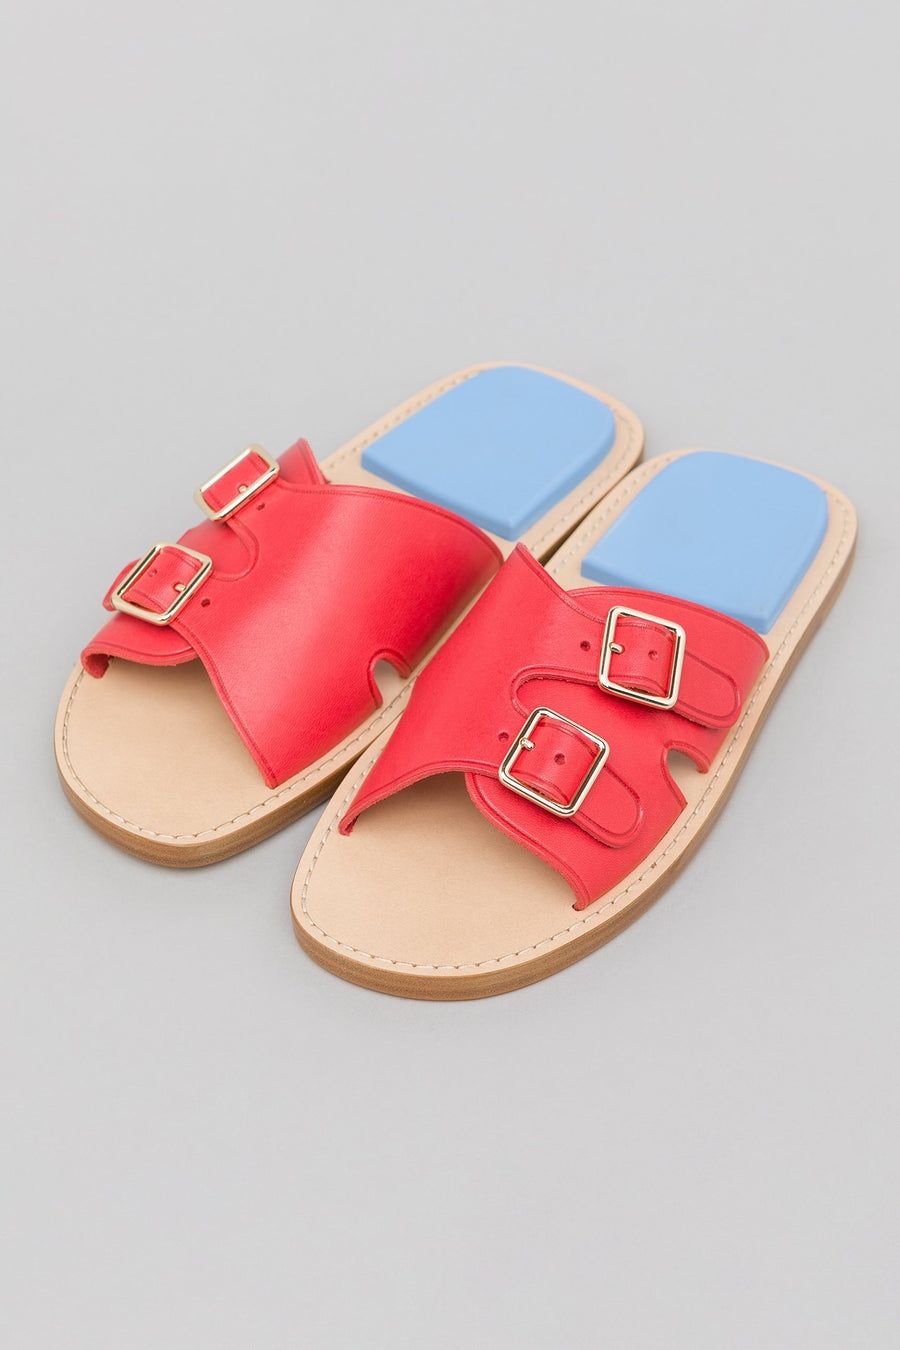 Acne Studios Bibbi Slide in Red/Blue - Notre